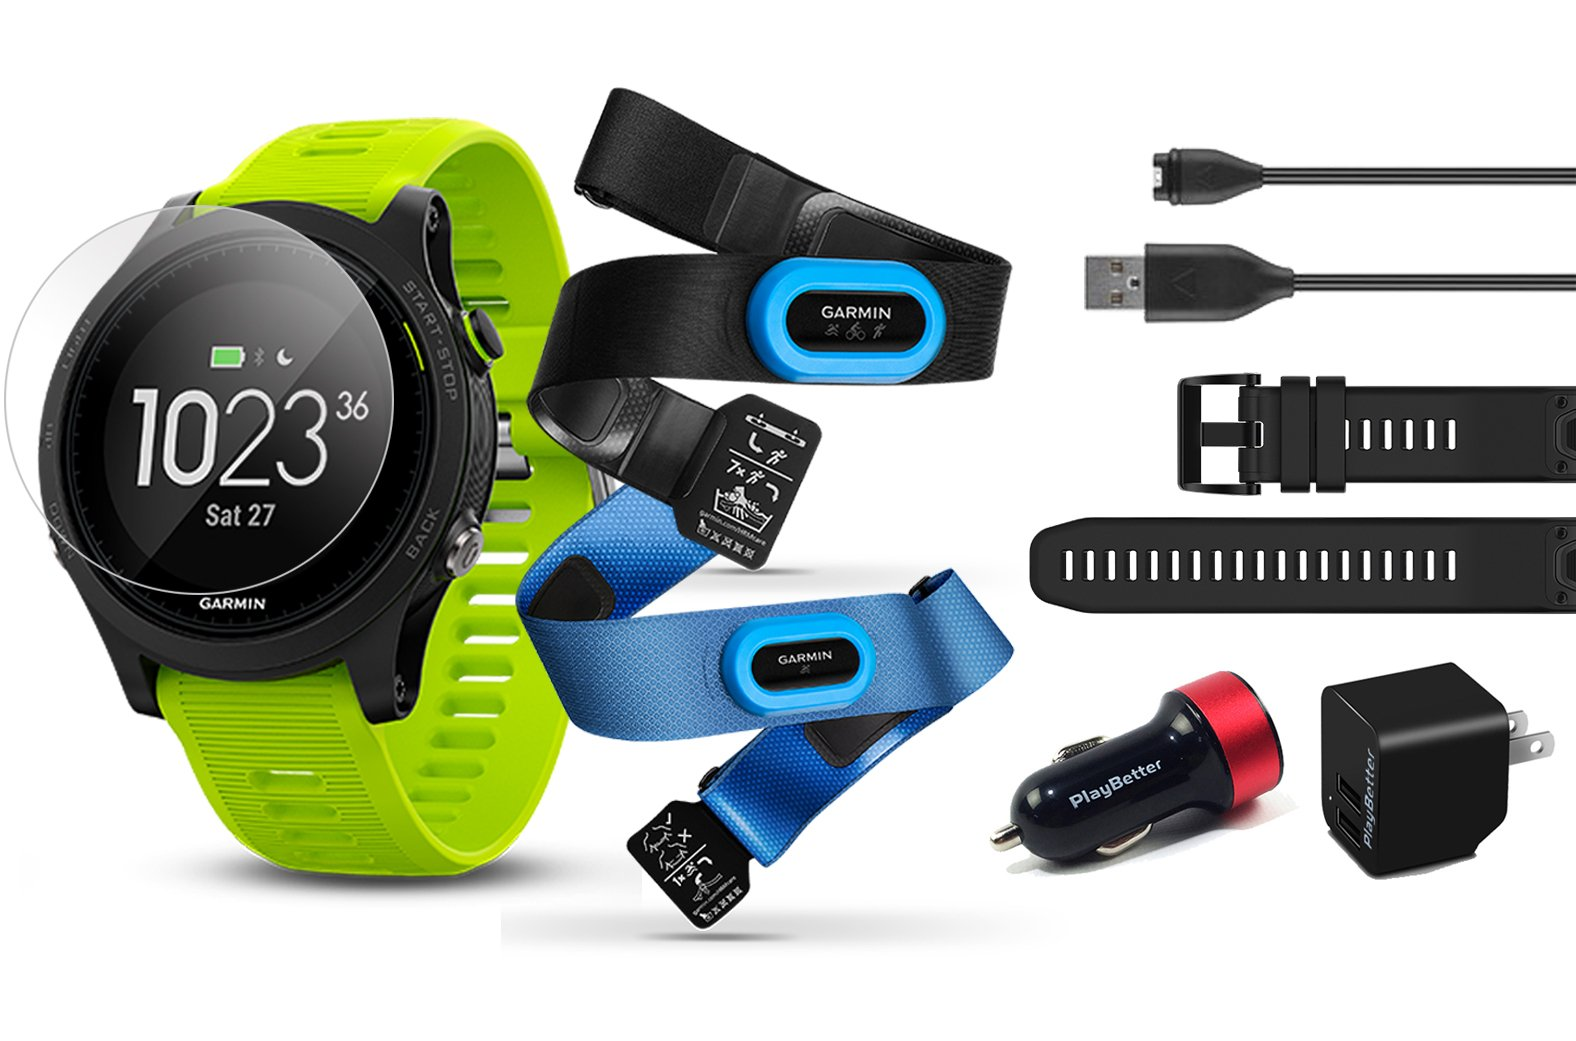 Garmin Forerunner 935 (Tri-Bundle) Power Bundle | Includes HRM Tri & Swim Chest Straps, HD Screen Protector Film (x4), Extra Silicone Band, PlayBetter USB Car/Wall Adapters | GPS Training Watch by PlayBetter